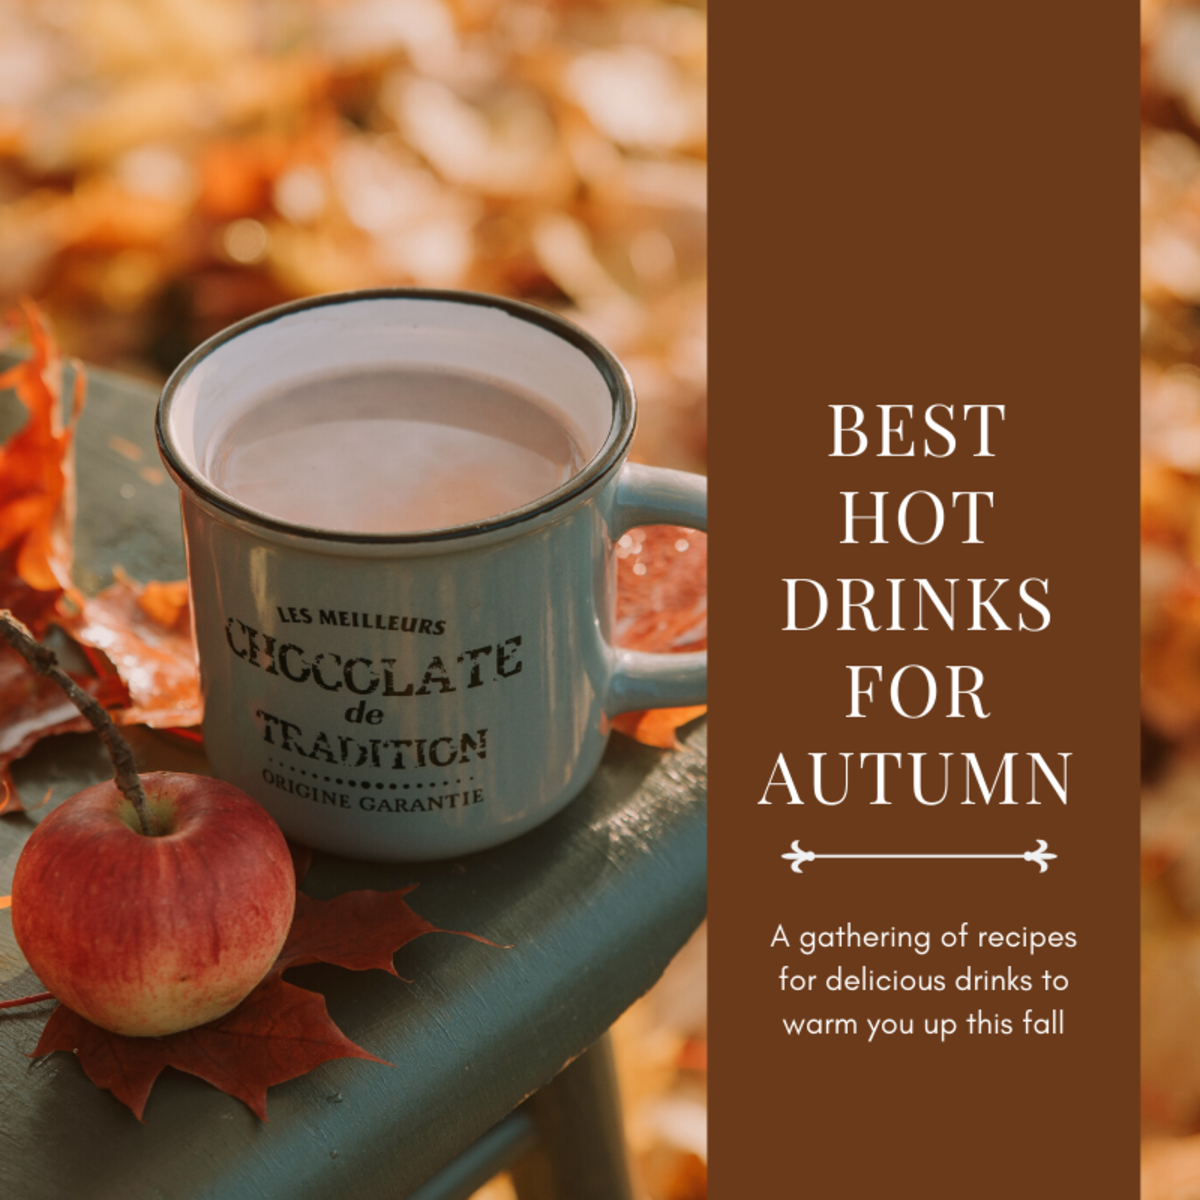 This article compiles a handful of my favorite autumnal drinks for when it starts getting colder outside.